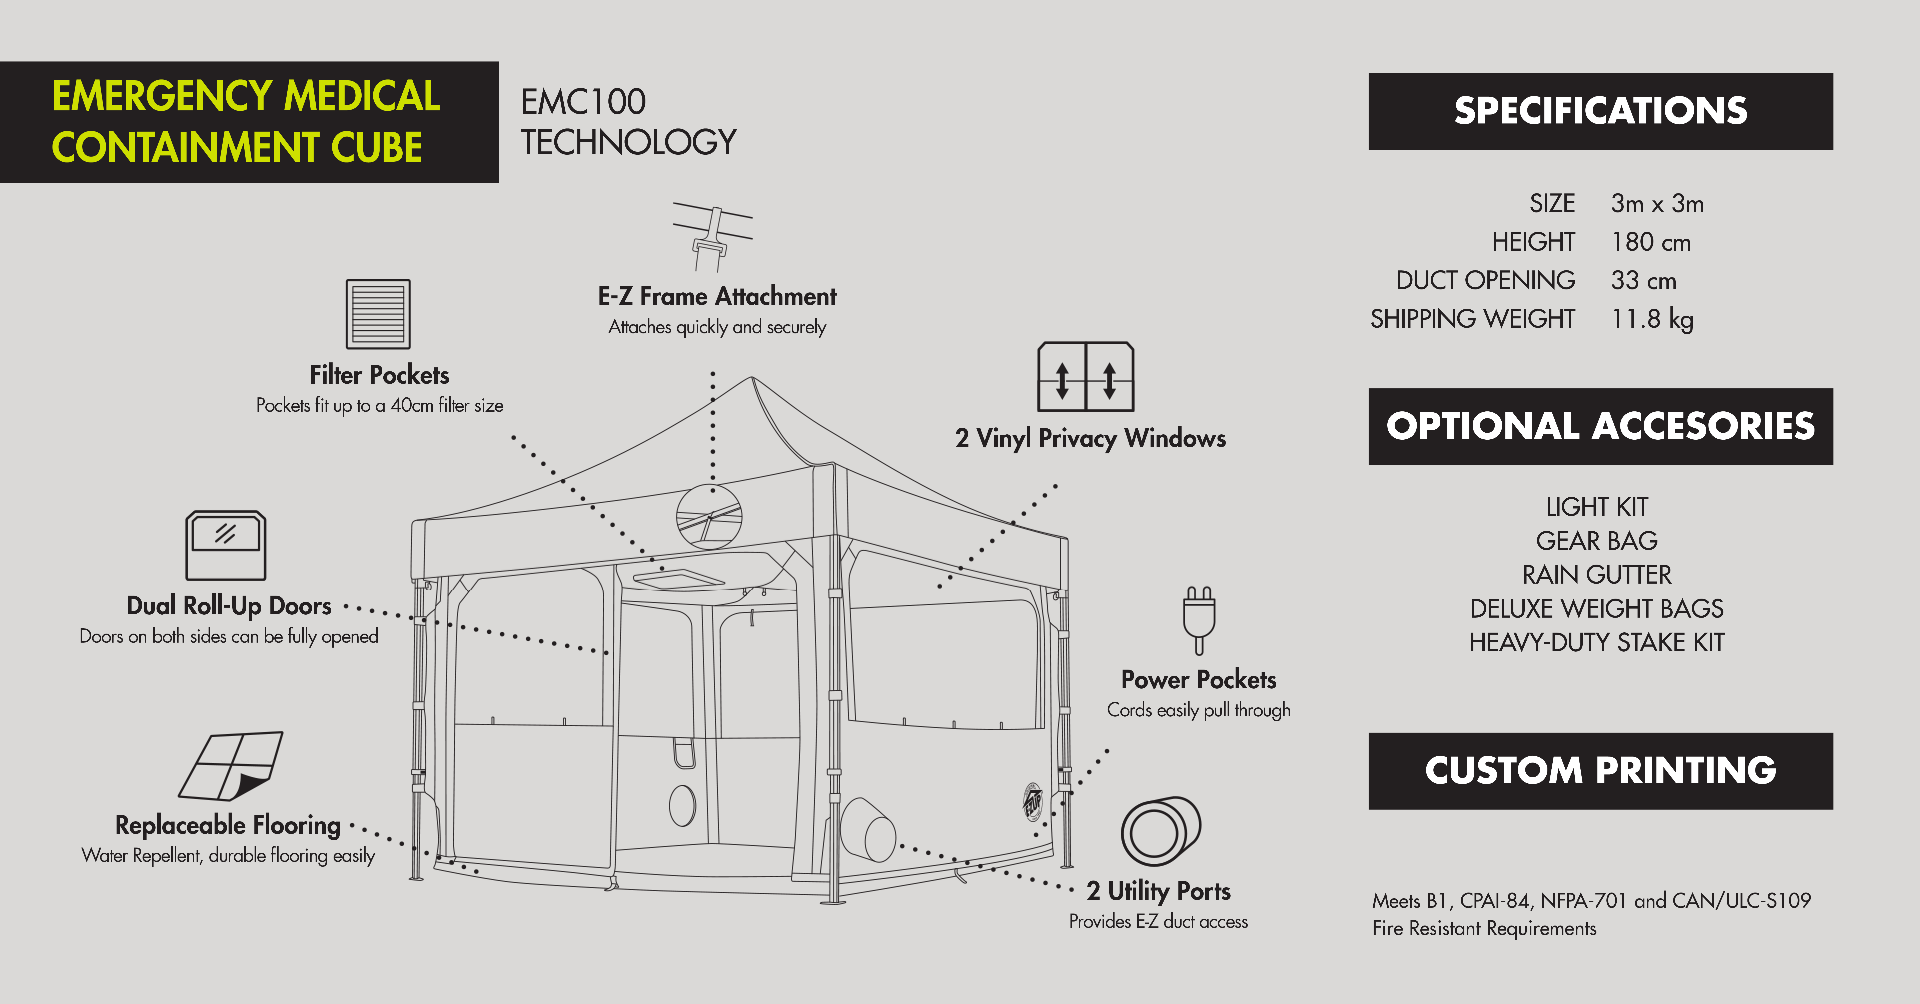 Shelter Technology Specifications